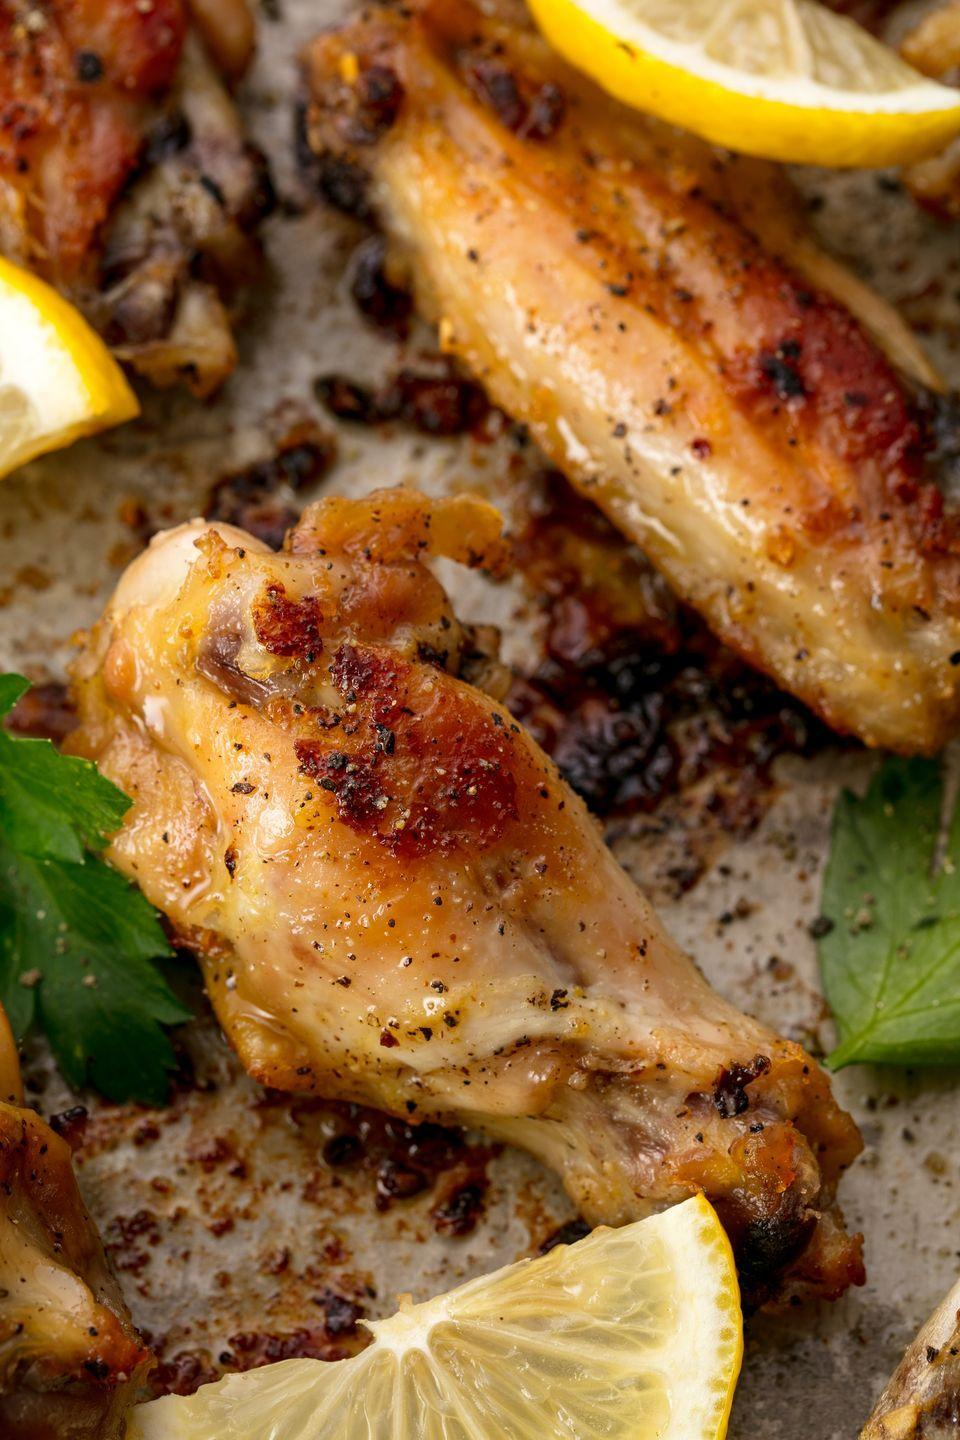 """<p>We'll take our wings with a twist.</p><p>Get the recipe from <a href=""""https://www.redbookmag.com/cooking/recipe-ideas/recipes/a54789/lemon-pepper-wings-recipe/"""" rel=""""nofollow noopener"""" target=""""_blank"""" data-ylk=""""slk:Delish"""" class=""""link rapid-noclick-resp"""">Delish</a>. </p>"""